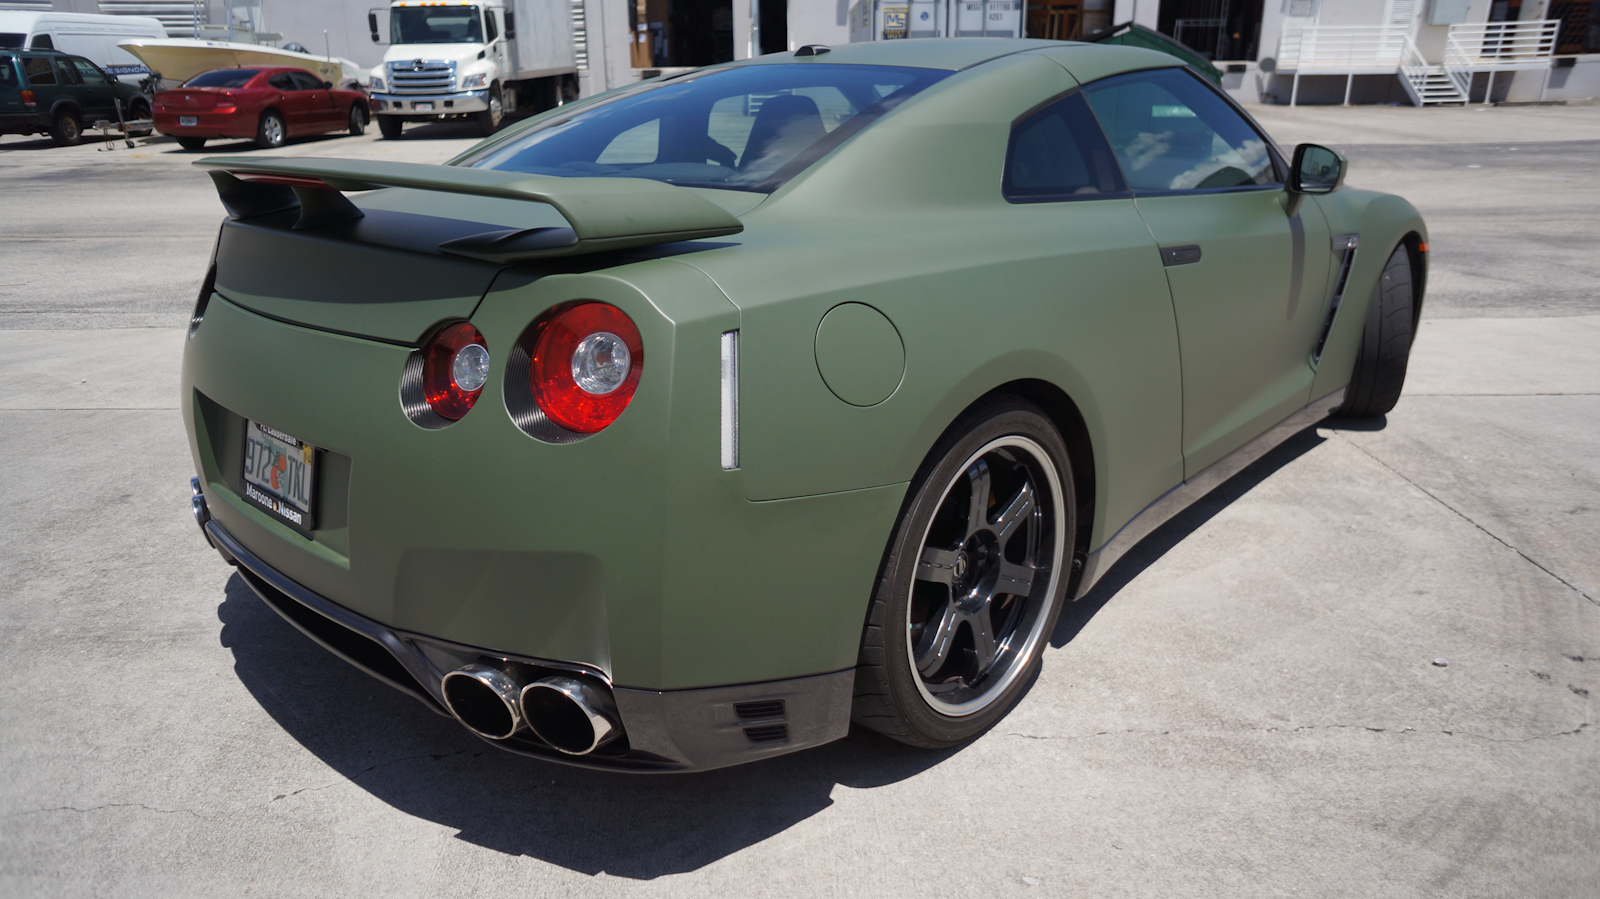 Matte Paint For Cars Suggestions Ideas Gamersfirst Forums